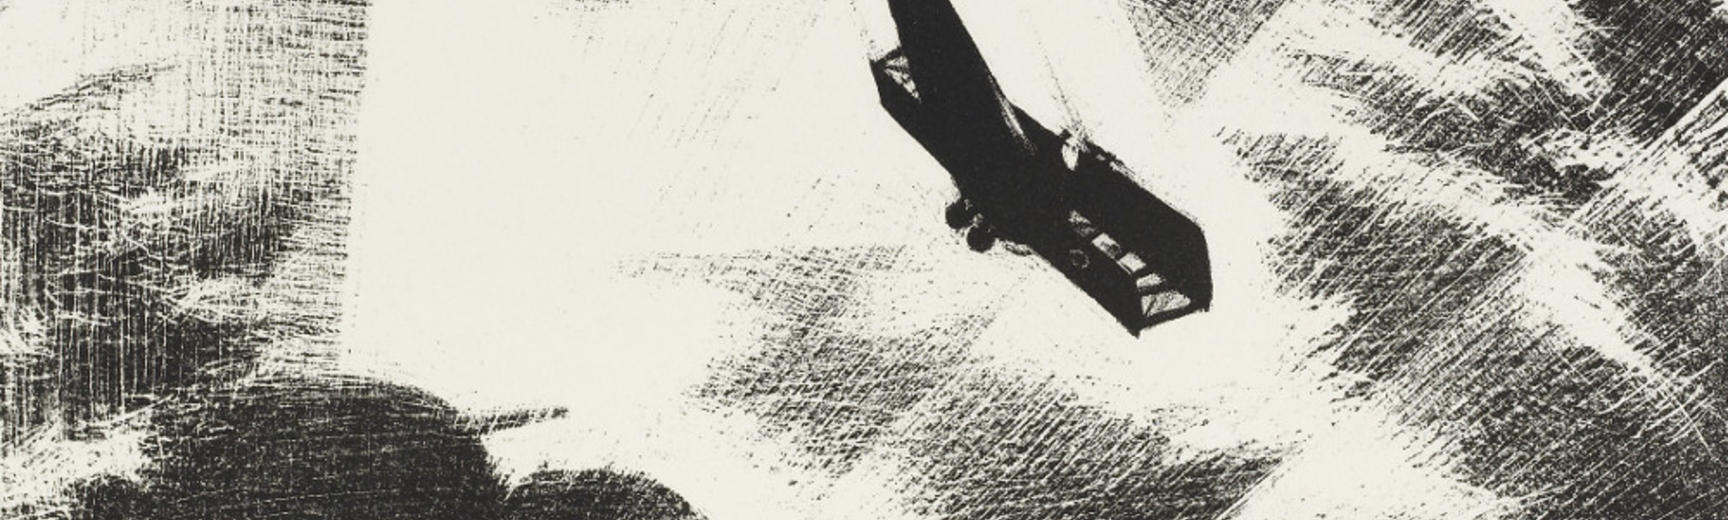 Nevinson, Swooping Down on a Taube, lithograph, 1917